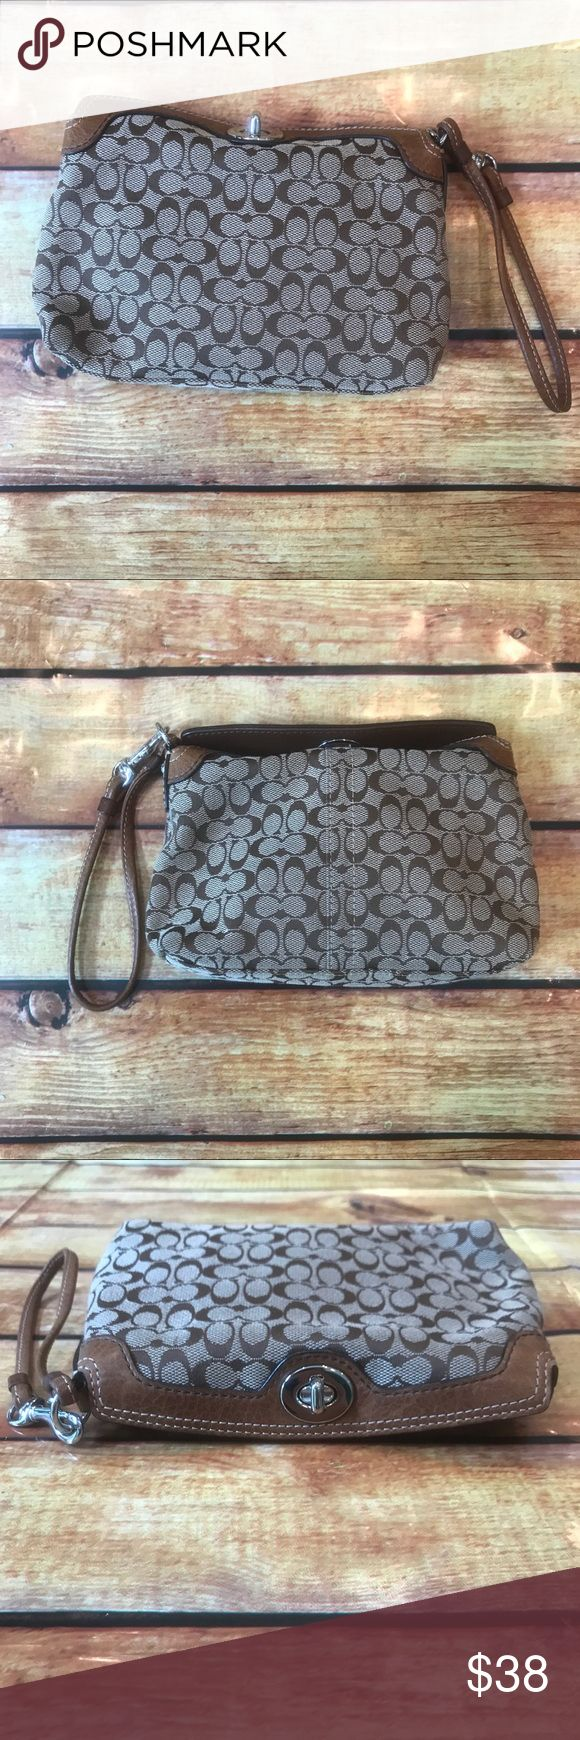 "Coach Signature Print Wristlet NWOT Coach Wristlet with Signature 'C' Print. Brand new never used - Purchased from a Coach outlet store - Measures about 8"" W x 5"" H Coach Bags Clutches & Wristlets"